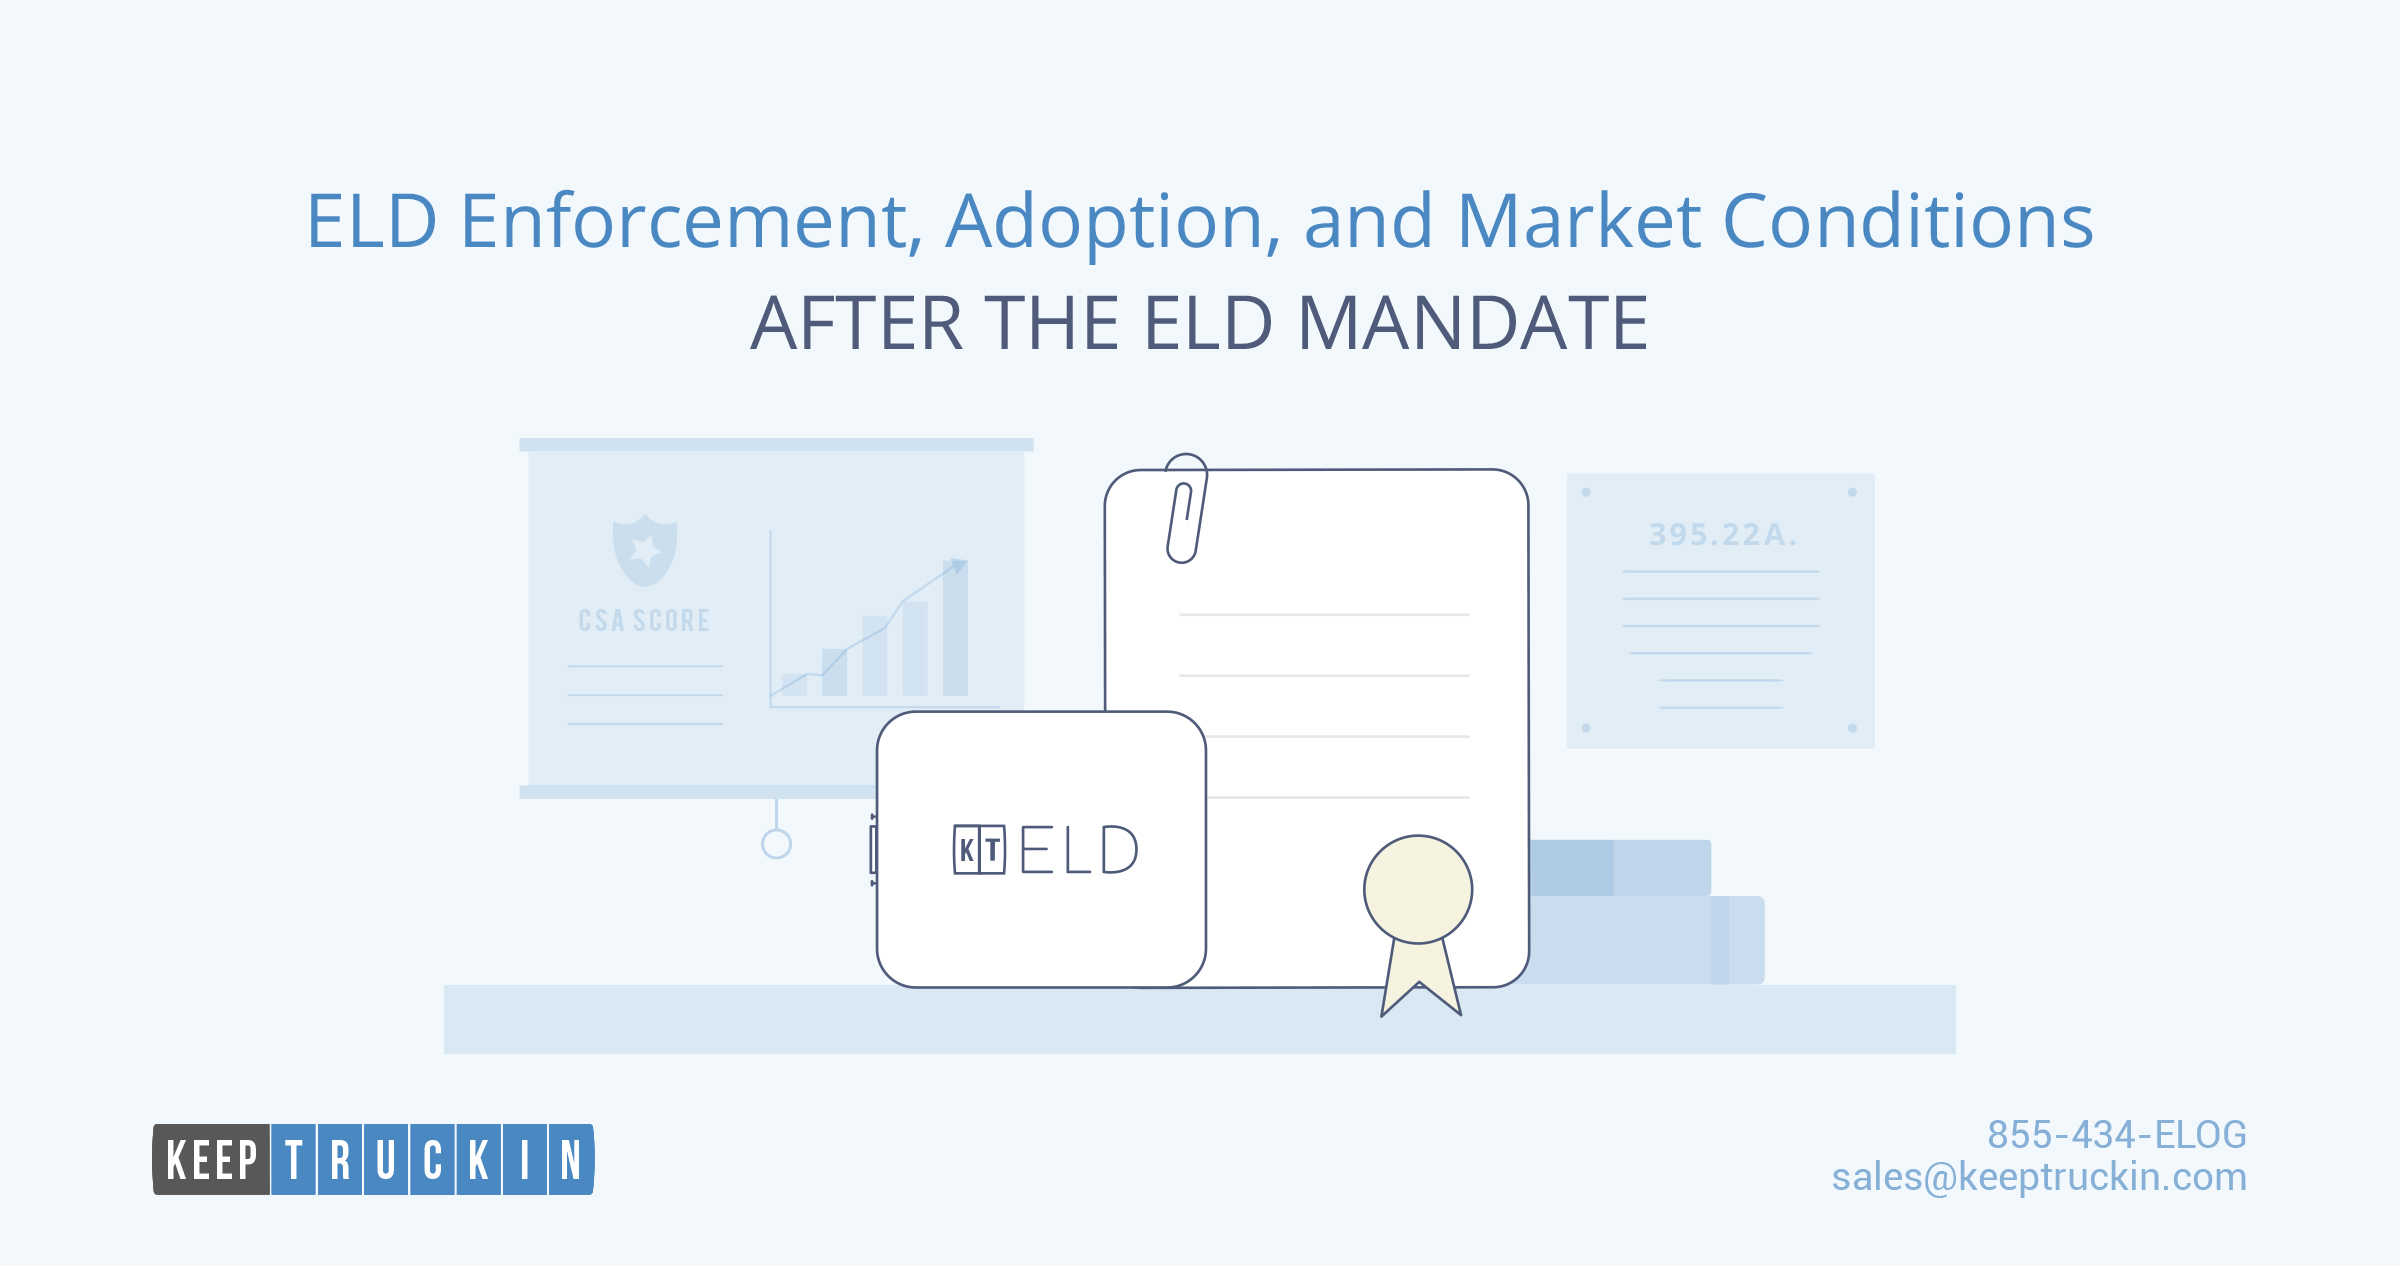 ELD enforcement, adoption, and market conditions after the ELD mandate